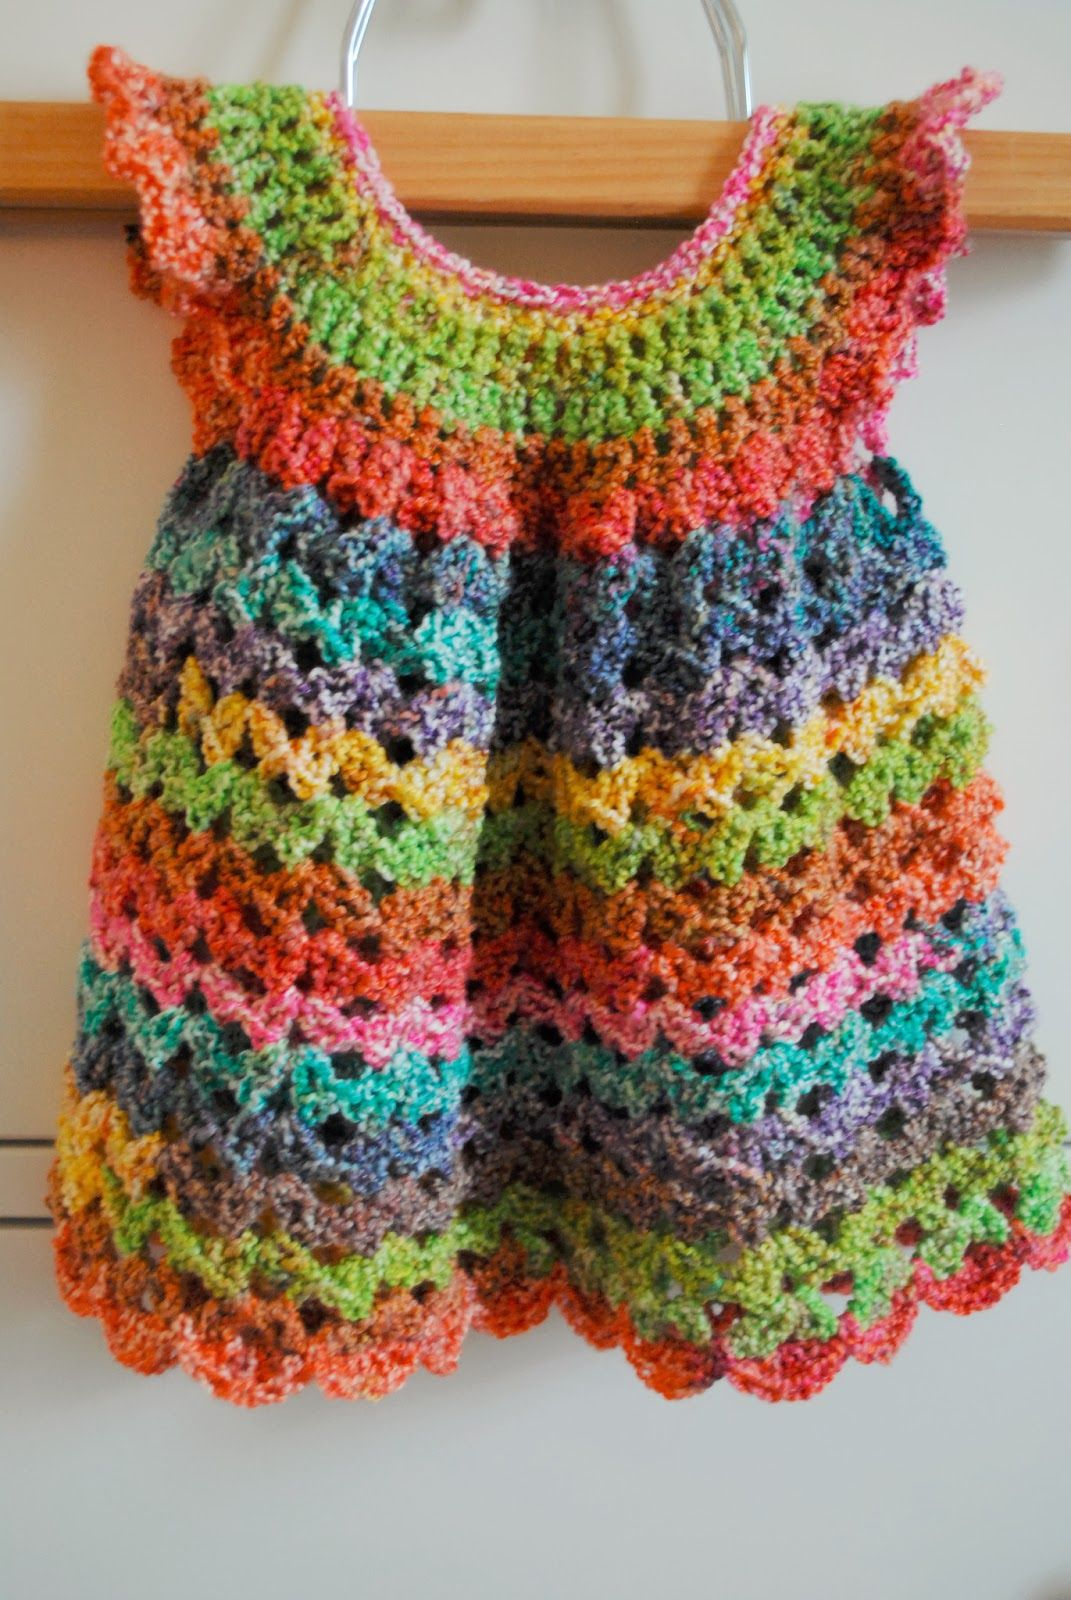 The underground hooker baby pinafore free pattern ser crochet angel wings baby dress free pattern by maxine gonser ravelry bankloansurffo Image collections